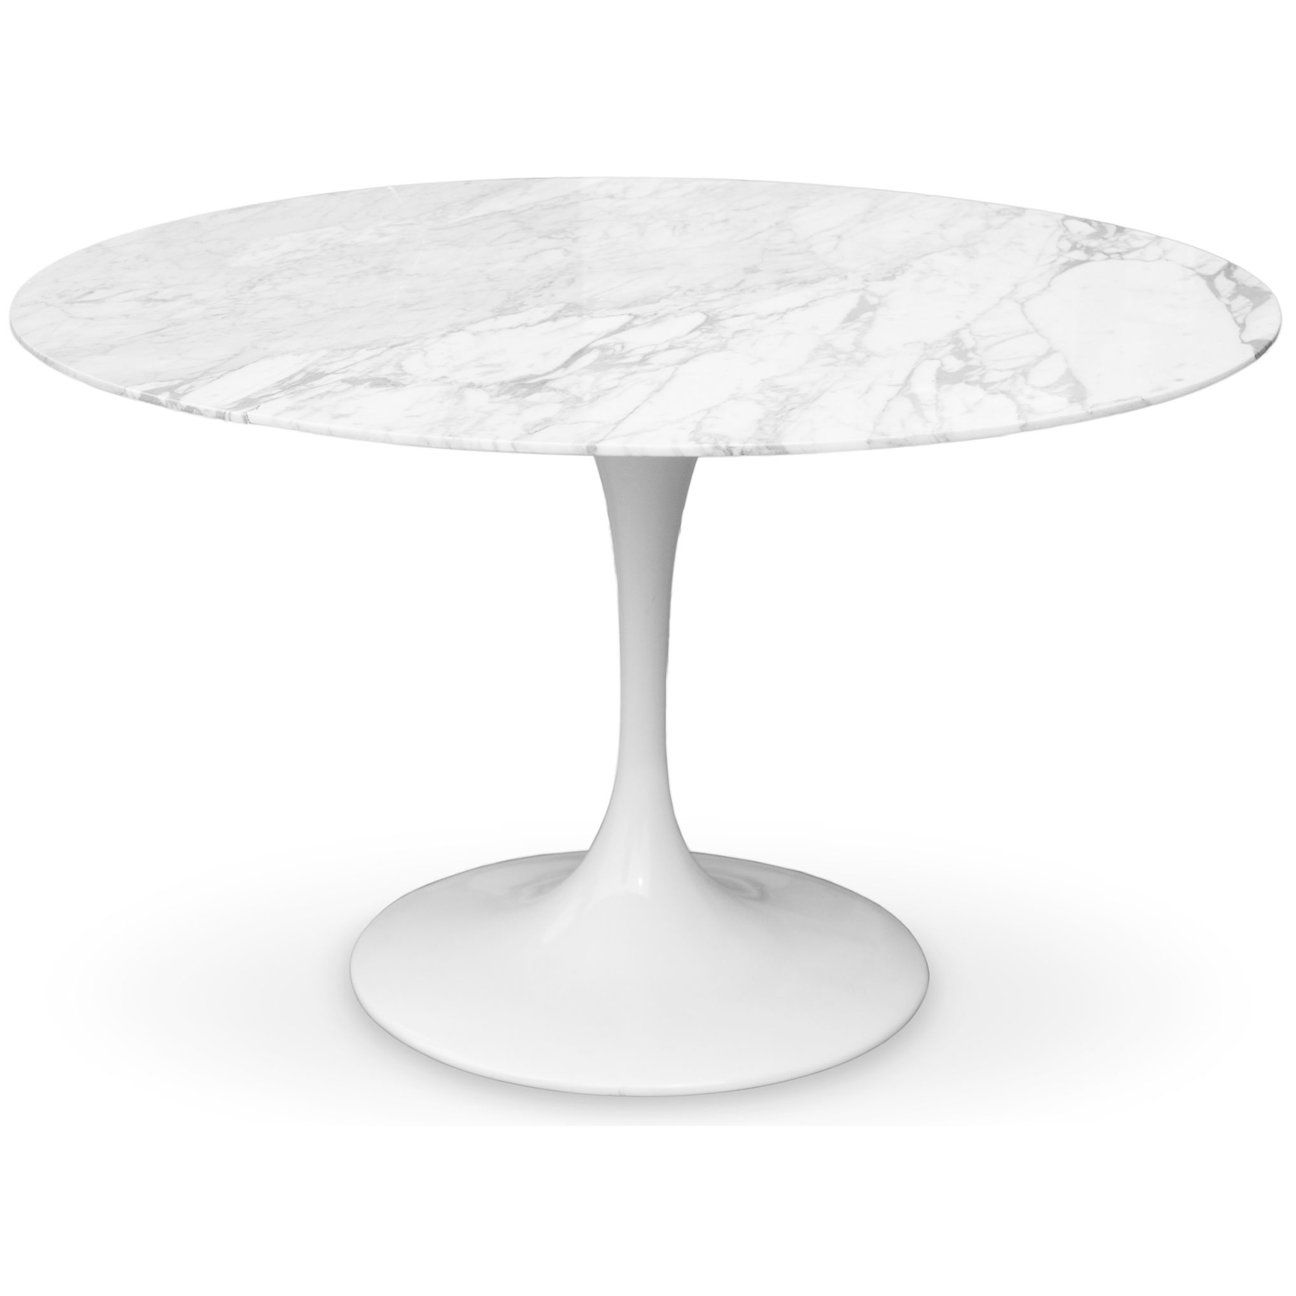 Eero Saarinen Tulip Table Marble Top 40 Modholic Com Saarinen